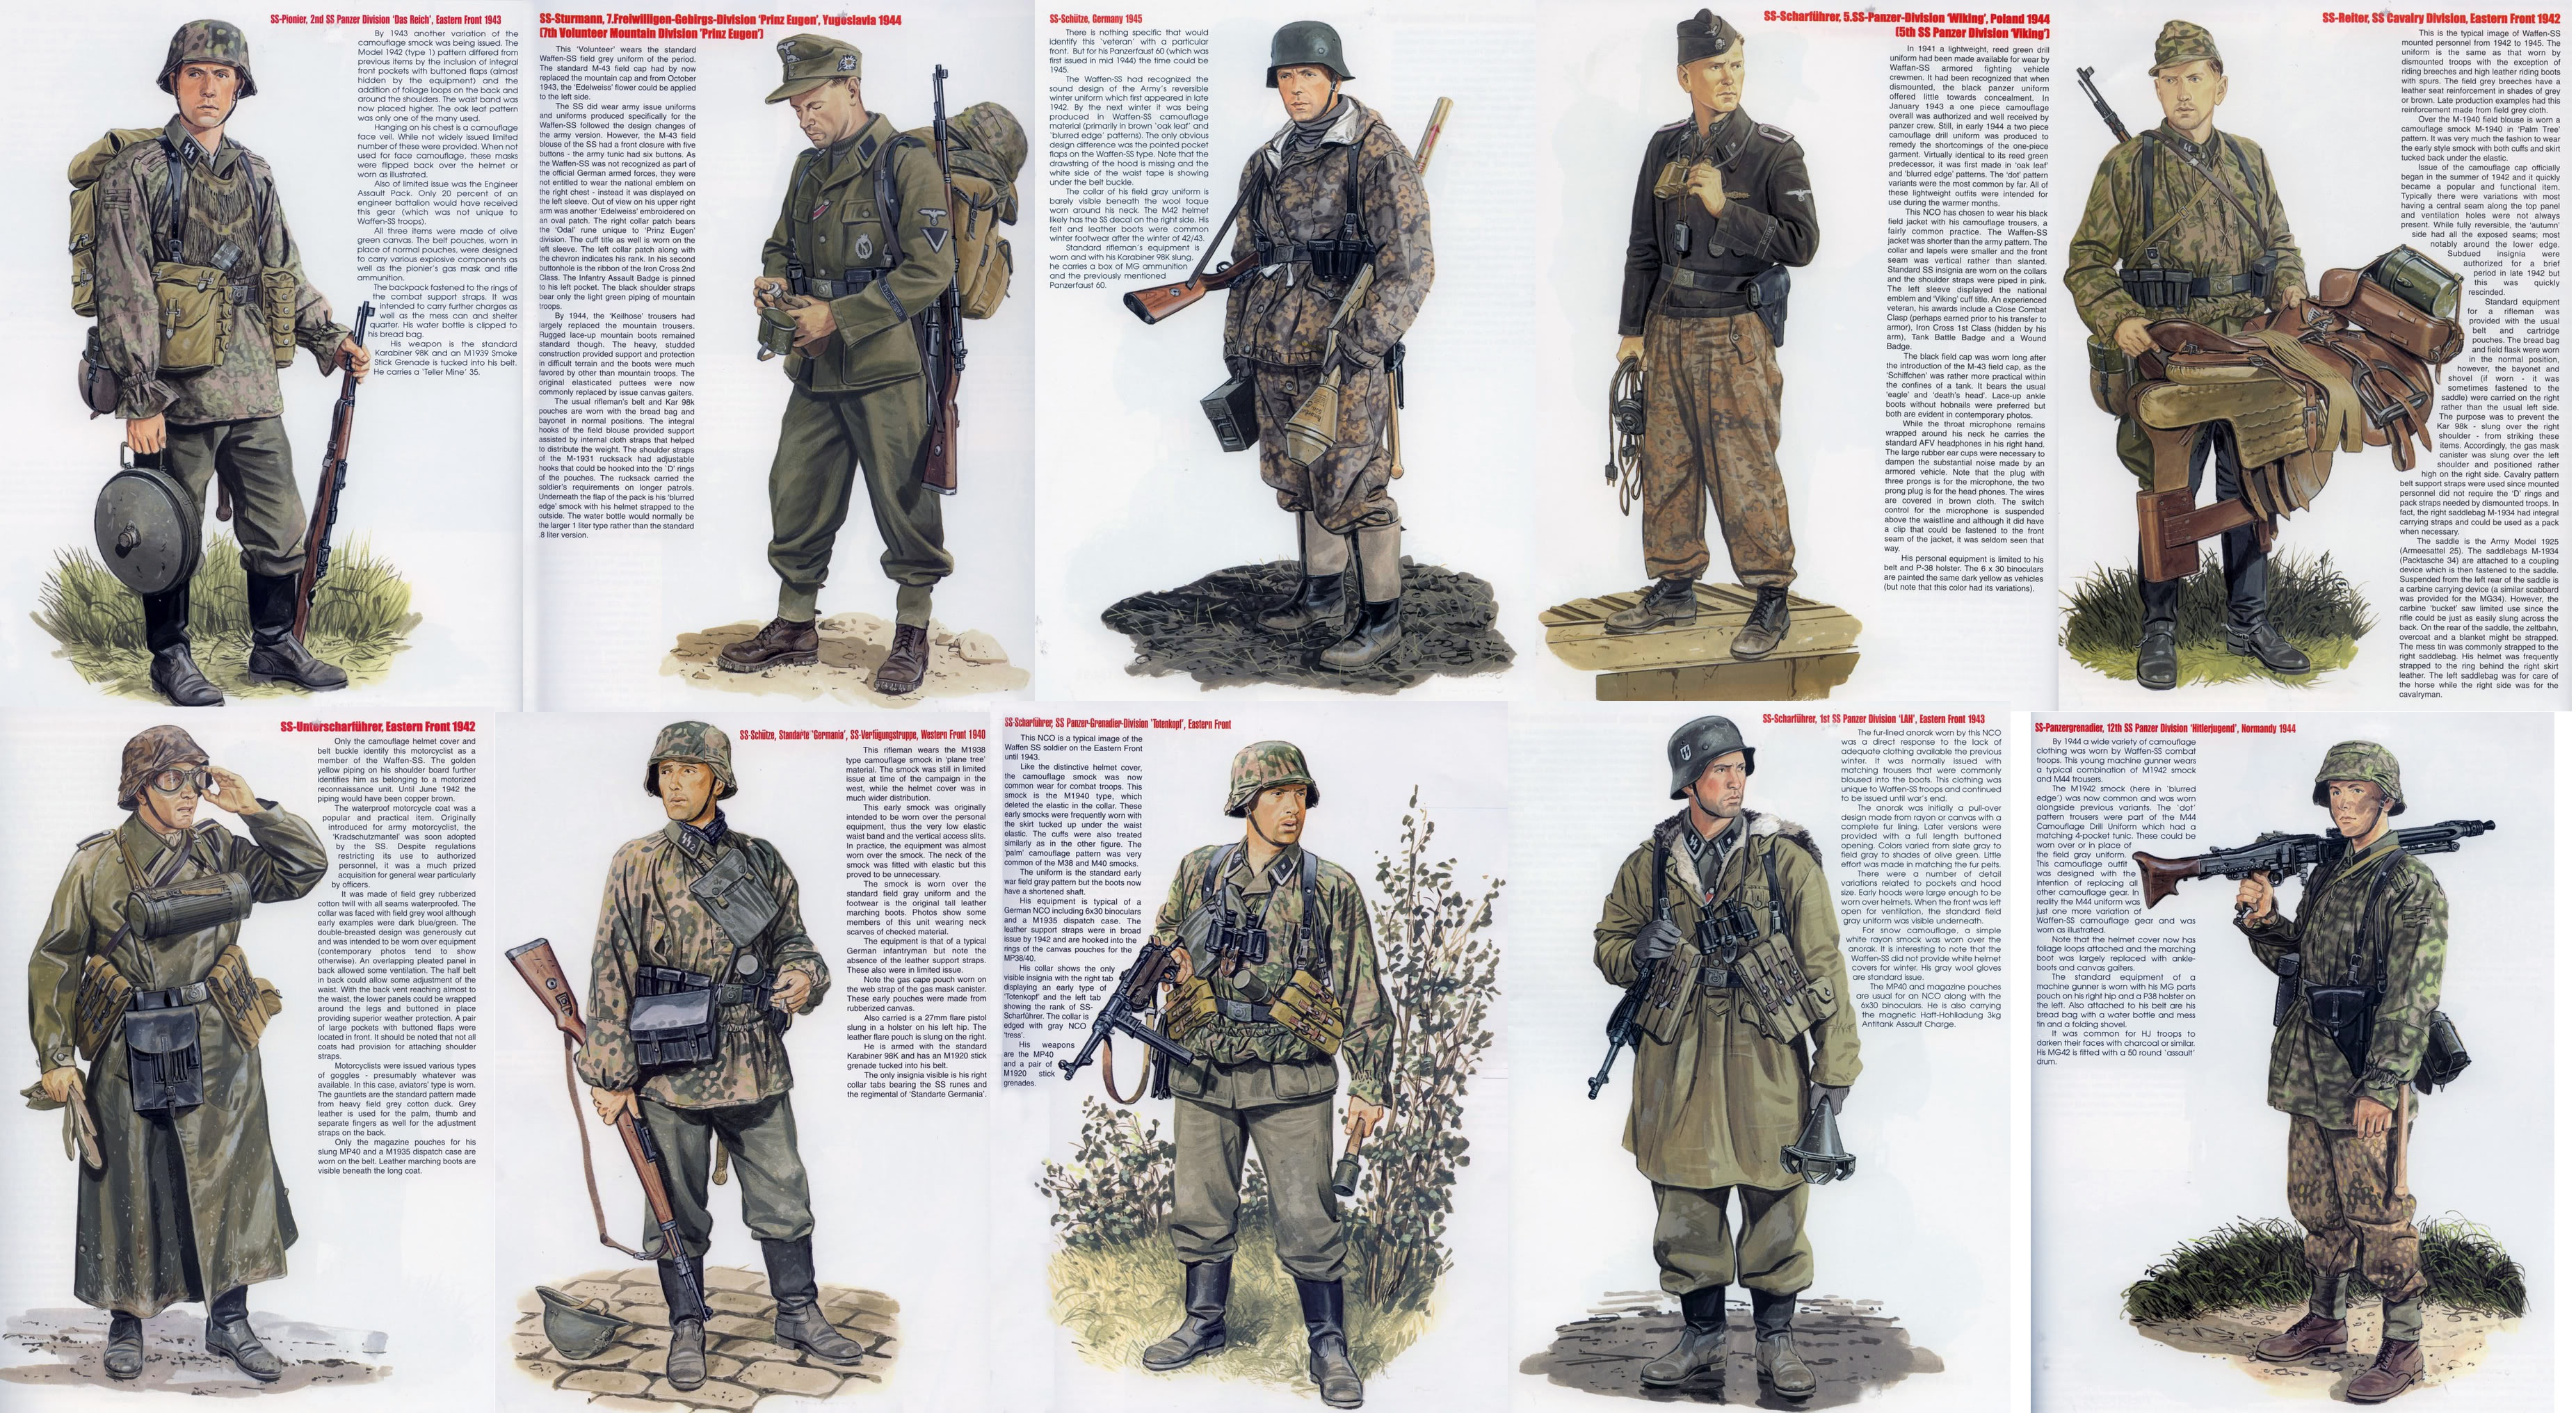 http://media.moddb.com/images/downloads/1/105/104647/wwii_uniforms_4_by_fvsj-d5gmf7h.jpg